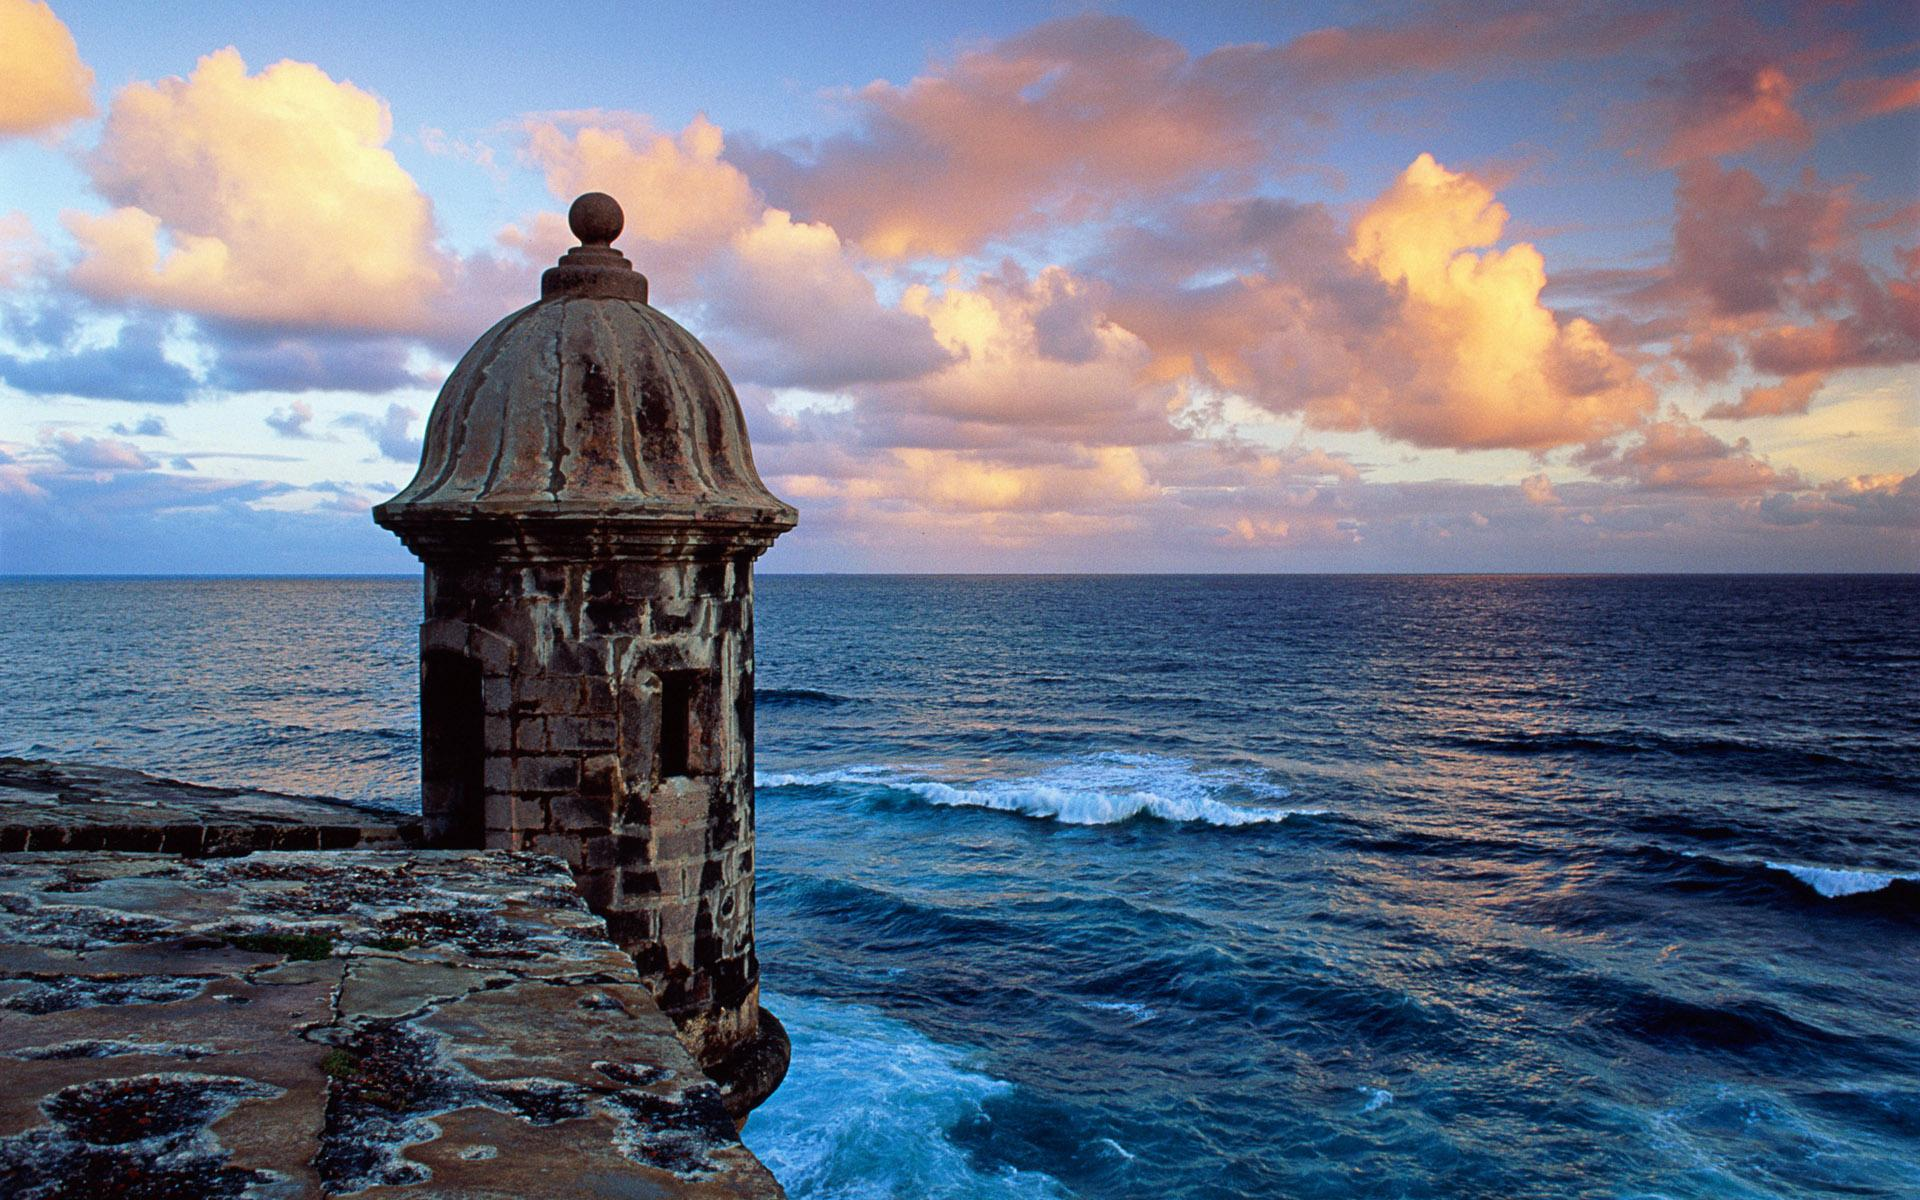 Old fortress View, 10 things to see in Cuba